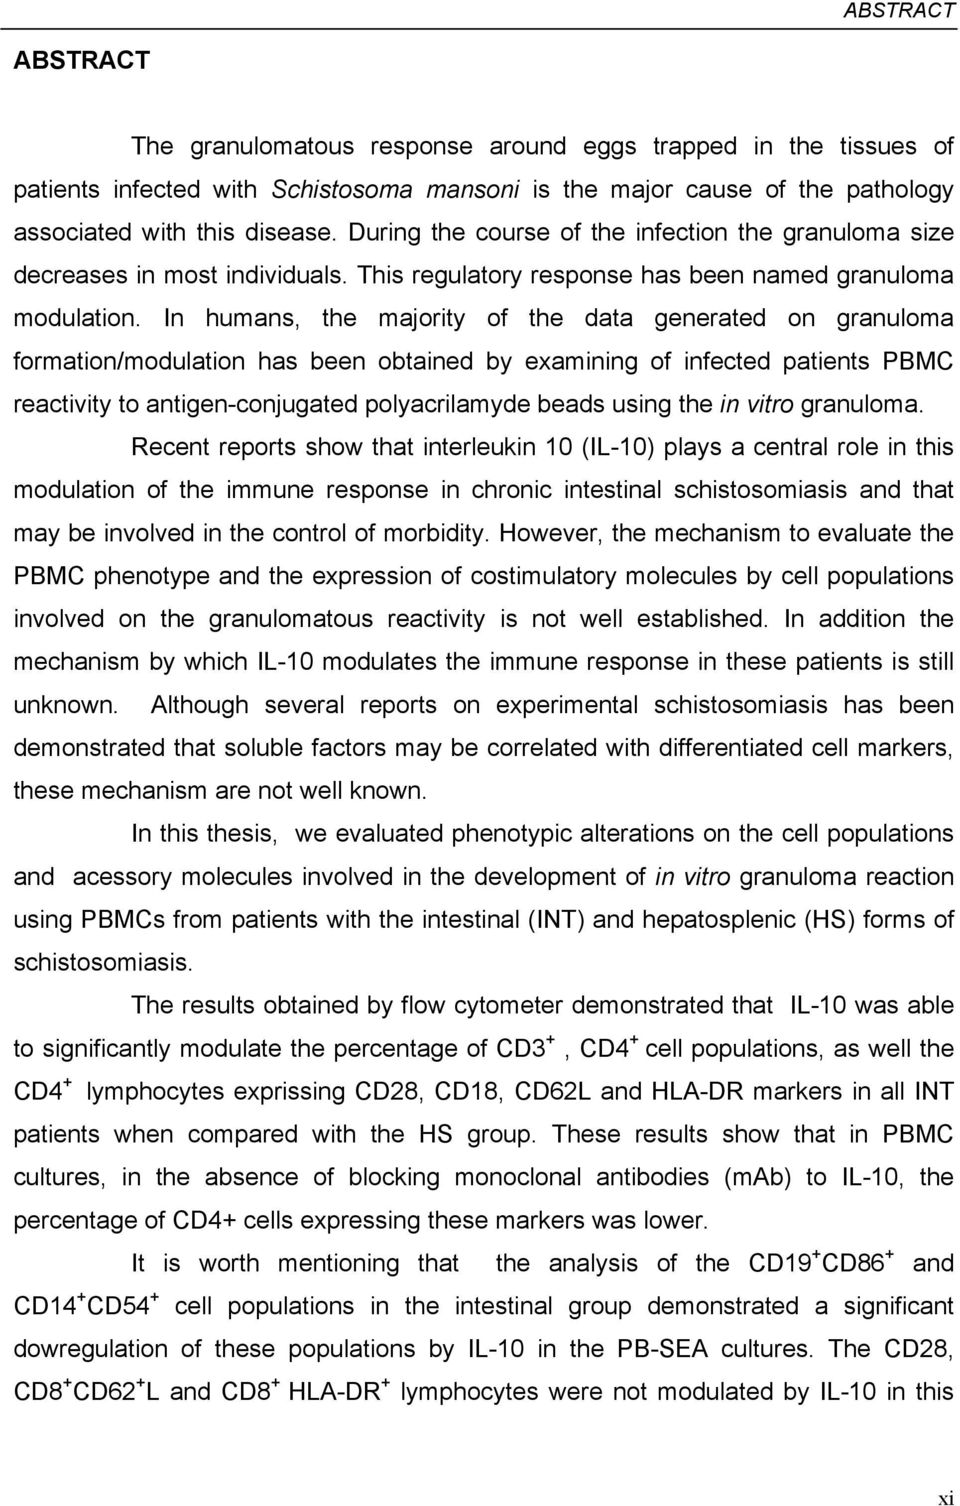 In humans, the majority of the data generated on granuloma formation/modulation has been obtained by examining of infected patients PBMC reactivity to antigen-conjugated polyacrilamyde beads using